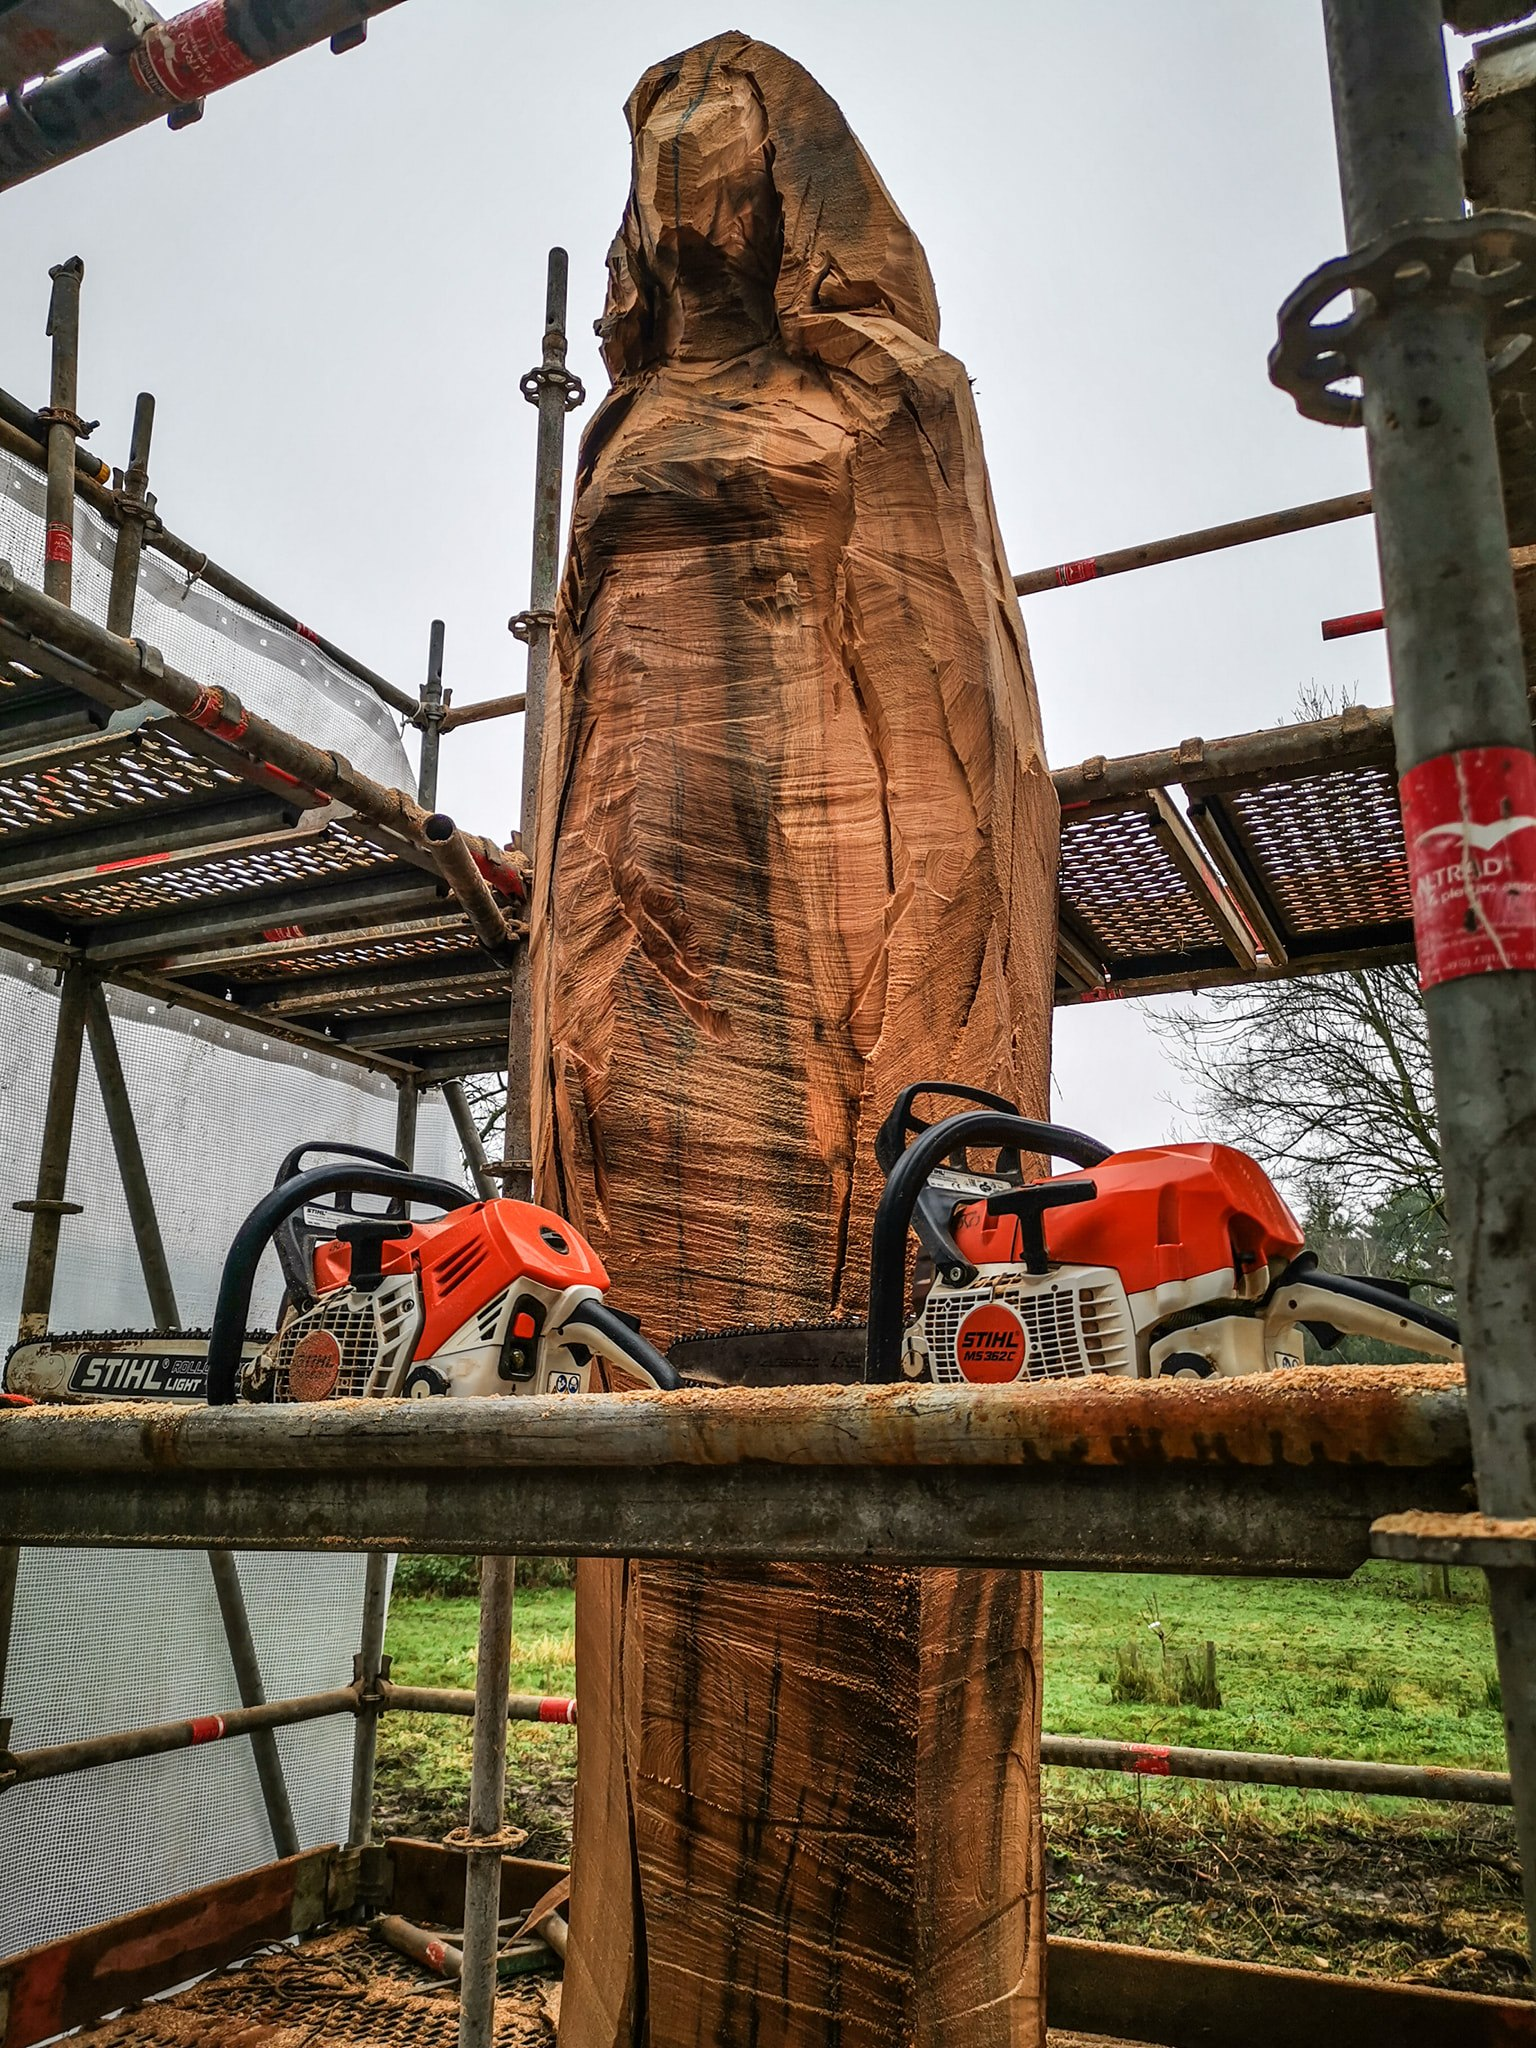 3m tree trunk in the process of being carved into a sculpture of a woman. She is surrounded by scaffolding, and two stihl chainsaws used for carving are photographed in front of the work in progress. Sculpture is the Marbury Lady by Simon O'Rourke, and the photograph is to show his favourite tools for carving faces.